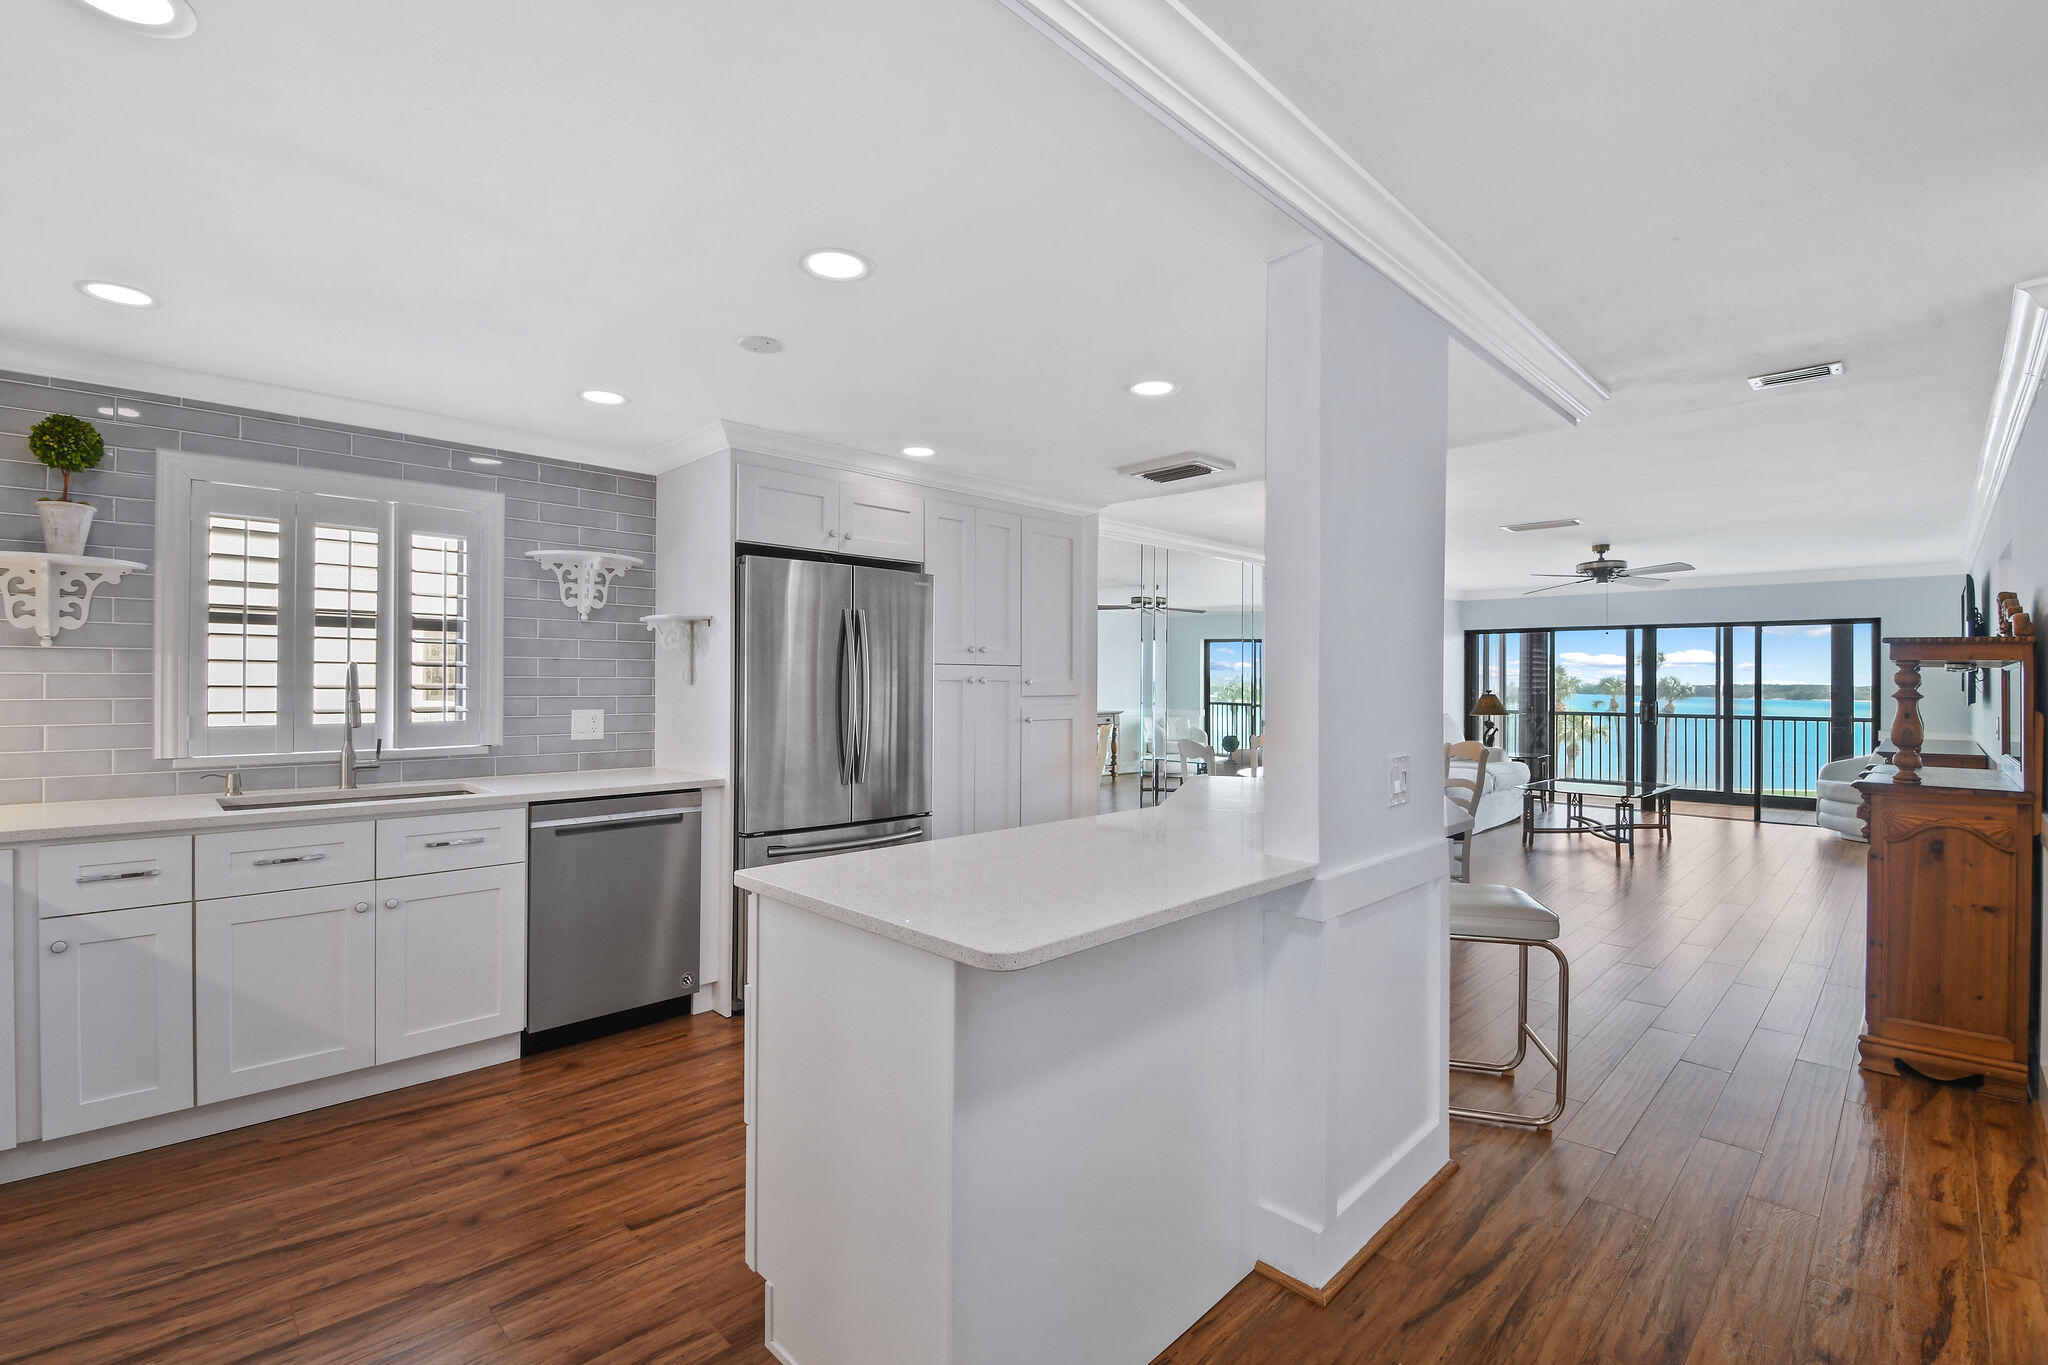 Beautifully decorated waterfront END CORNER UNIT with Endless views looking straight out North of the  most beautiful blue Intracoastal waters. This community is tucked away in the North Corner of Palm Beach County.  Walking distance to shopping and restaurants and a short bike ride to the most fabulous beaches.  Beautifully white sparkling redecorated kitchen.  Stainless appliances.  The kitchen has been opened up to enhance an open view of the beautiful blue water.  This unit is full of natural light being a corner unit.  Washer and Dryer is conveniently located in the unit.  All window and slider are impact glass with the exception of front door and front door window side panel.  All dimensions approximate and should be verified.  Being sold ''as is''.  This is a 55+ community.